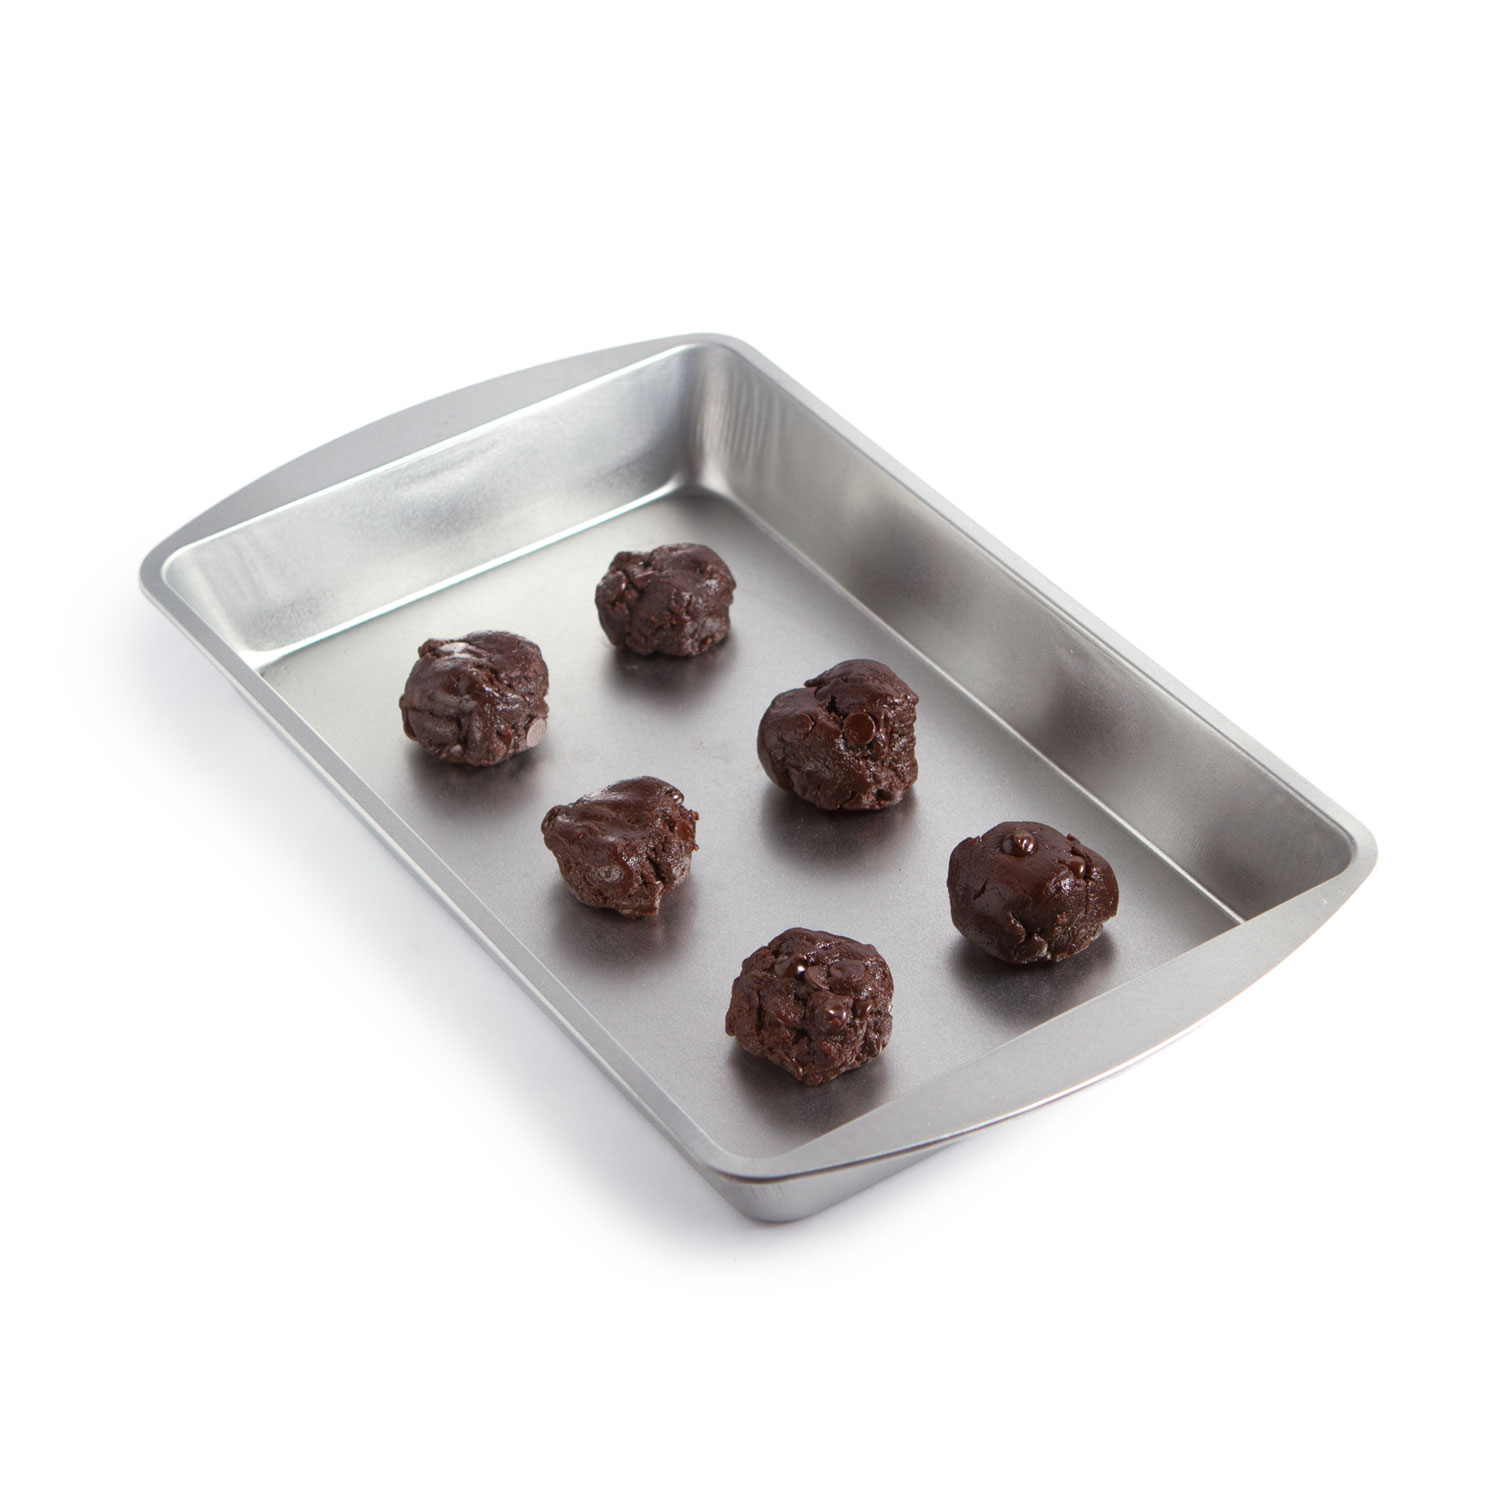 SFTE NF Double Chocolate Cookie Dough in tray